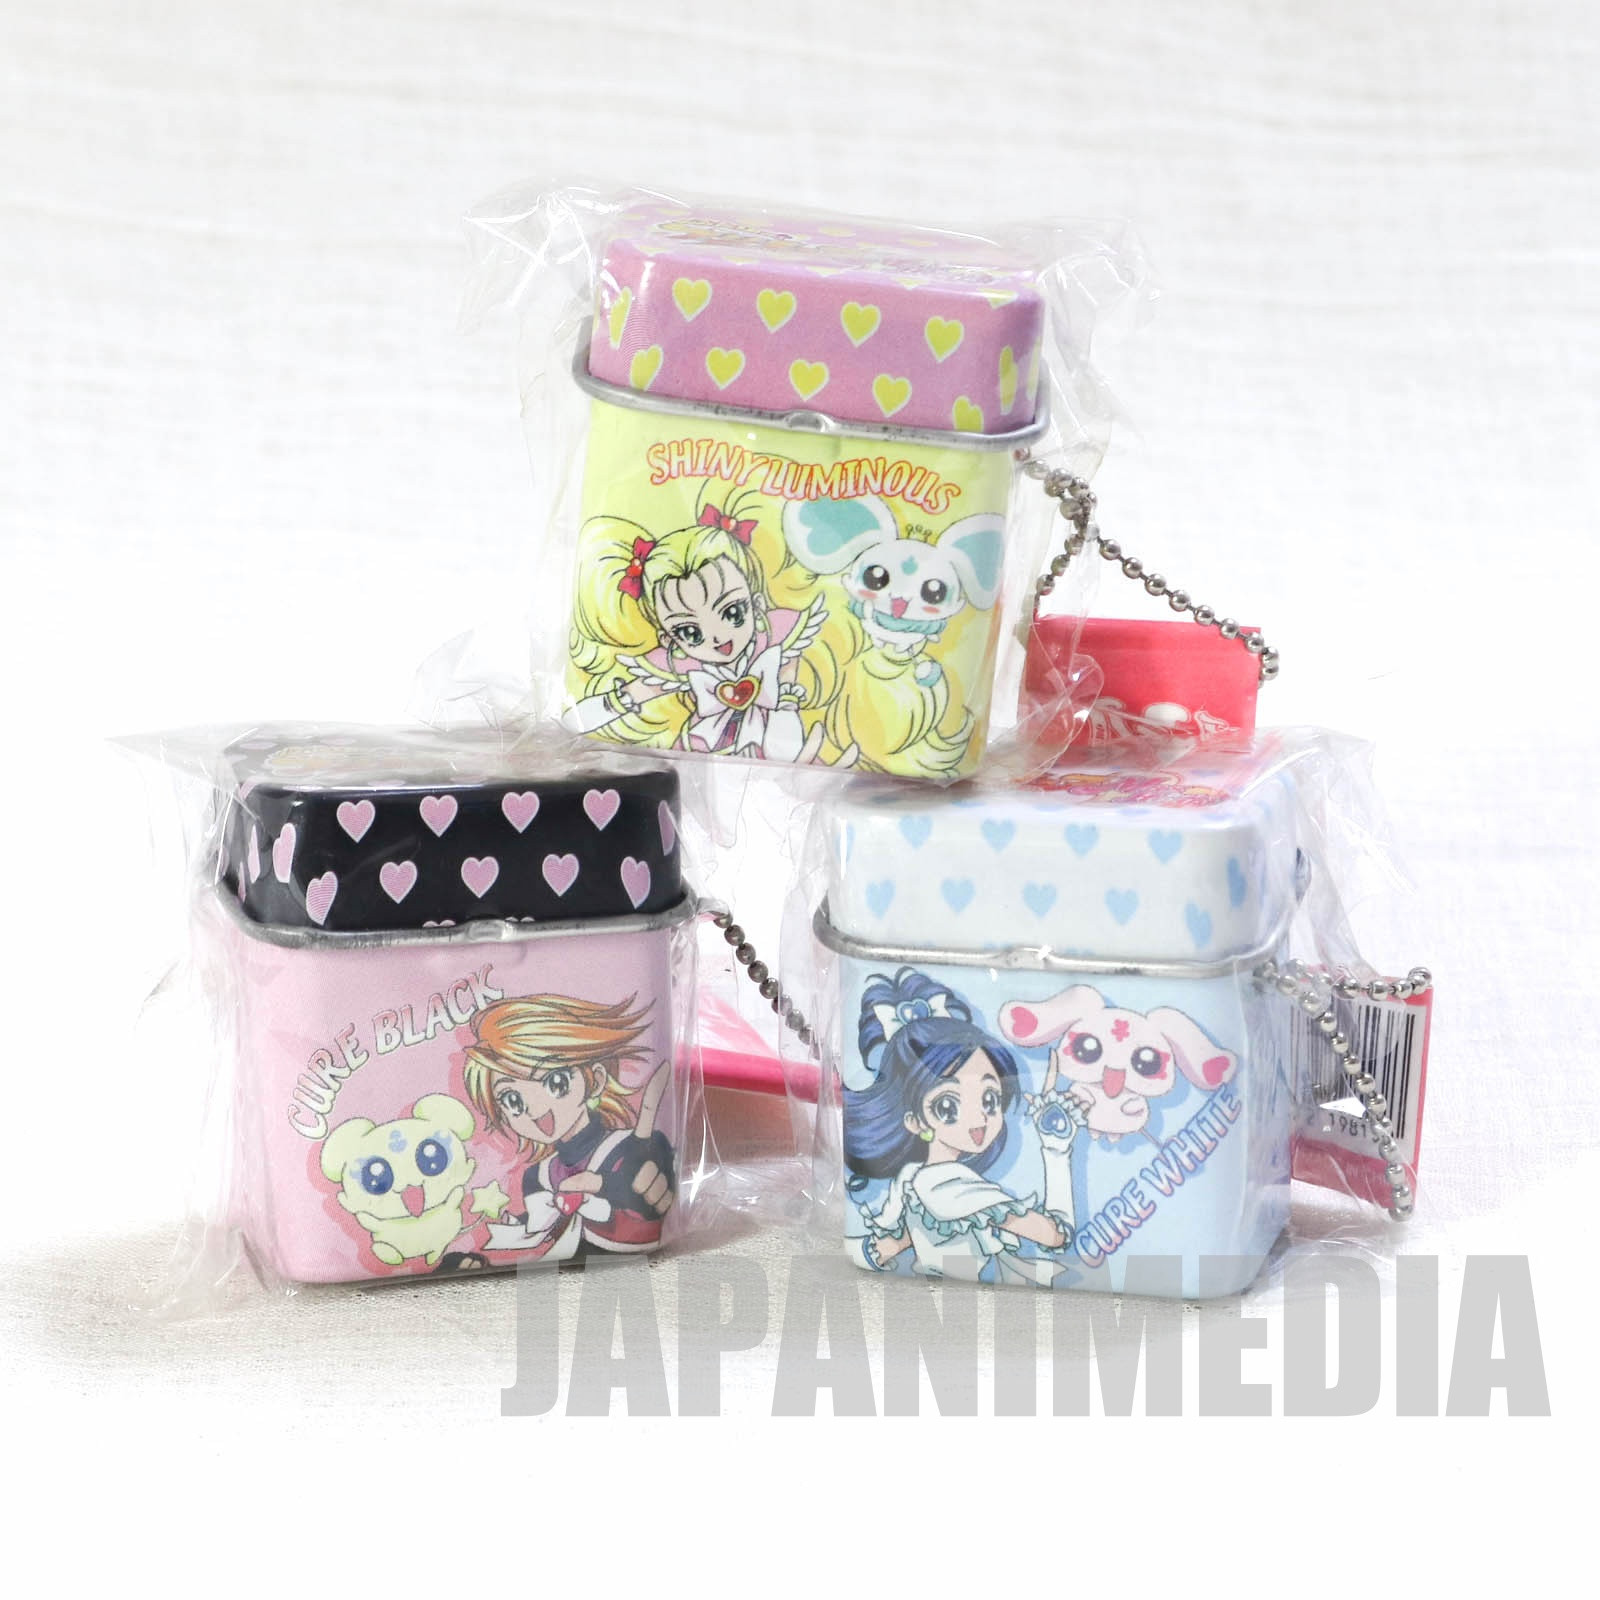 RARE!! Futari wa Pretty Cure Max Heart Cure Brack & Cure White & Shiny Luminous Micro Can Ball keychain 3pc set JAPAN 2